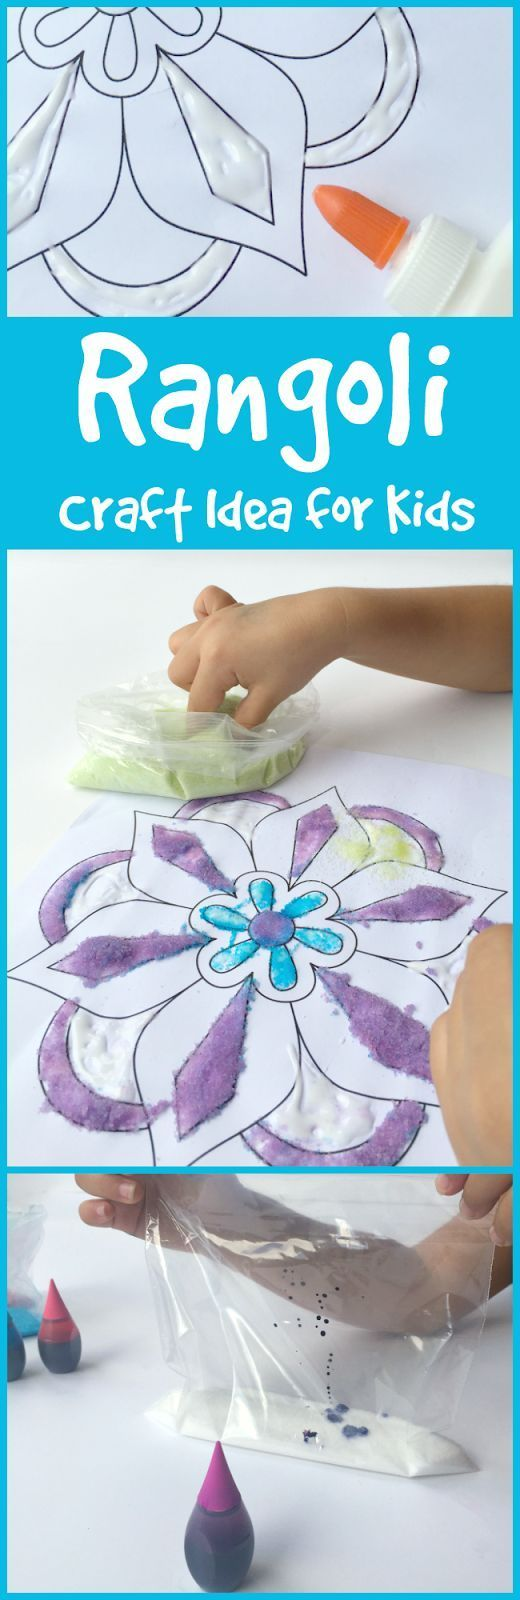 Rangoli Craft Idea for Kids for Diwali to encourage kids to learn about the world through art.